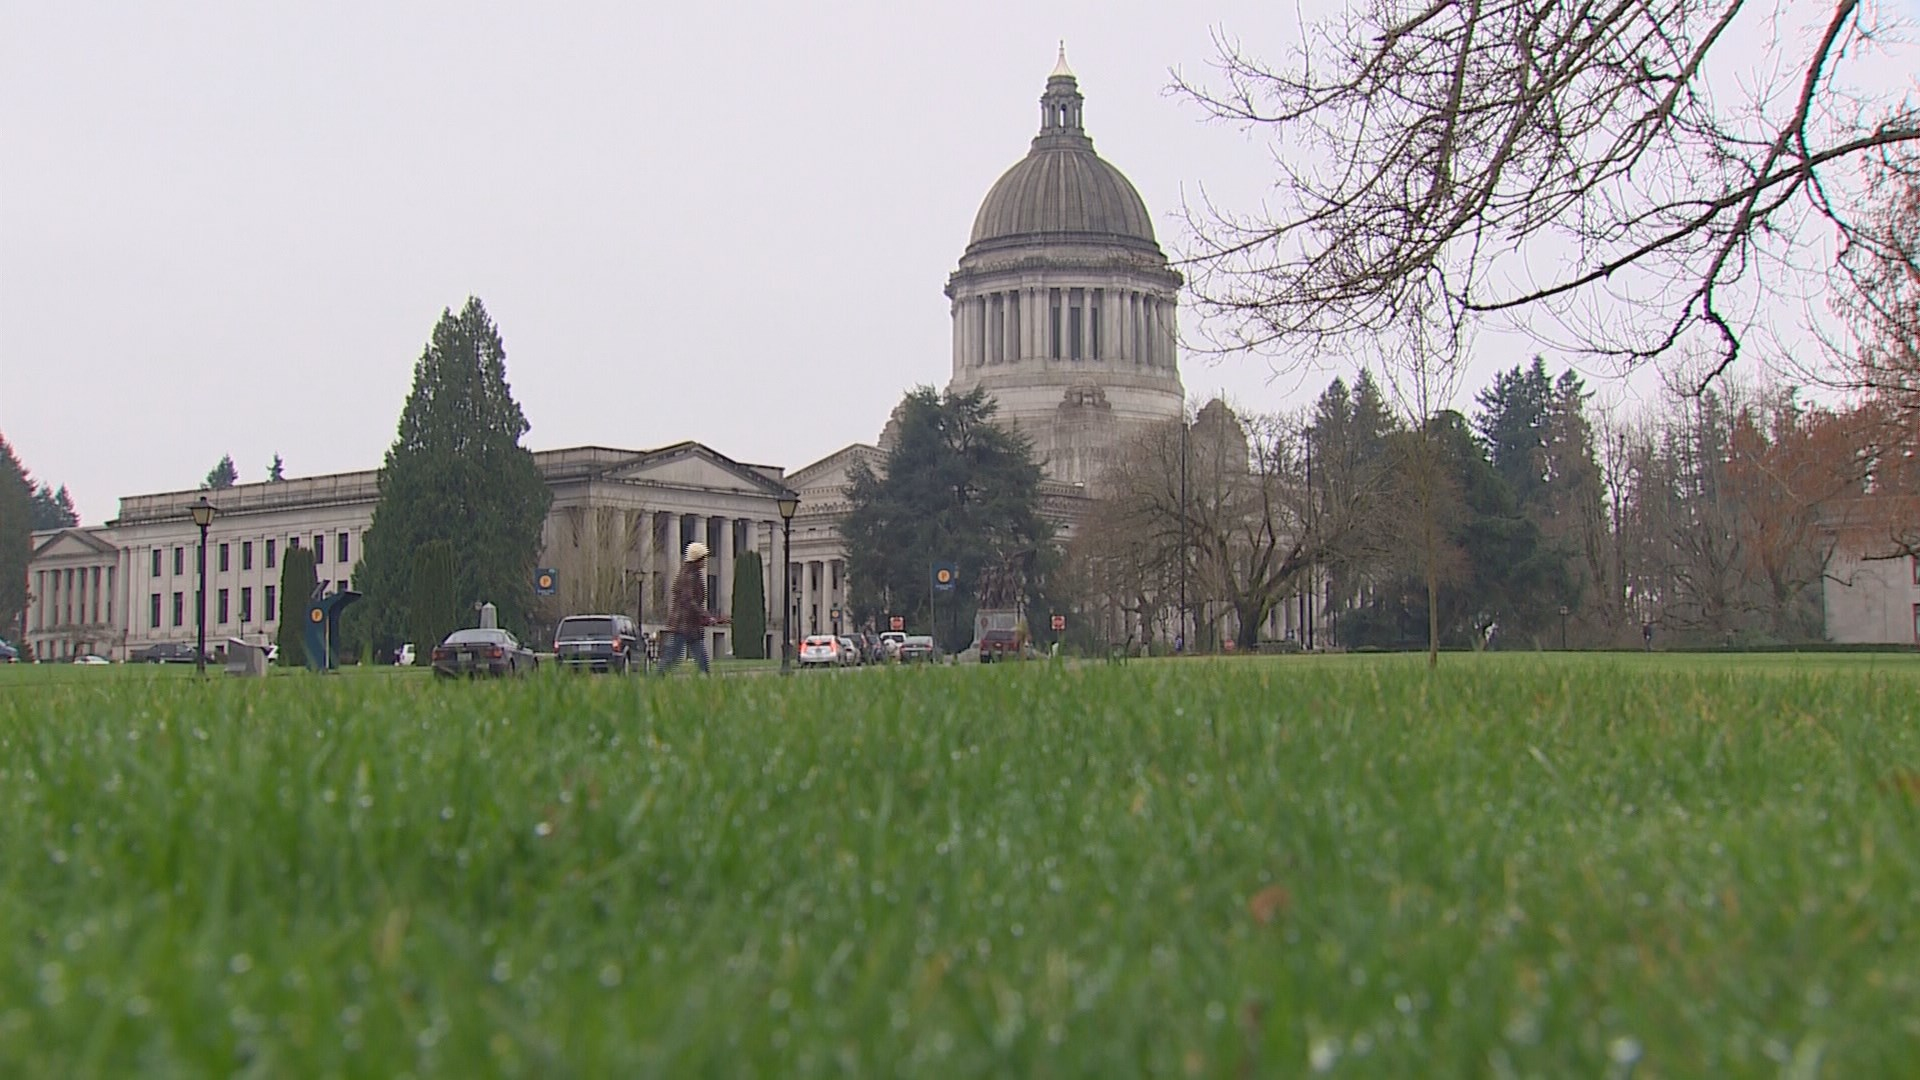 Washington state government for kids - Krem